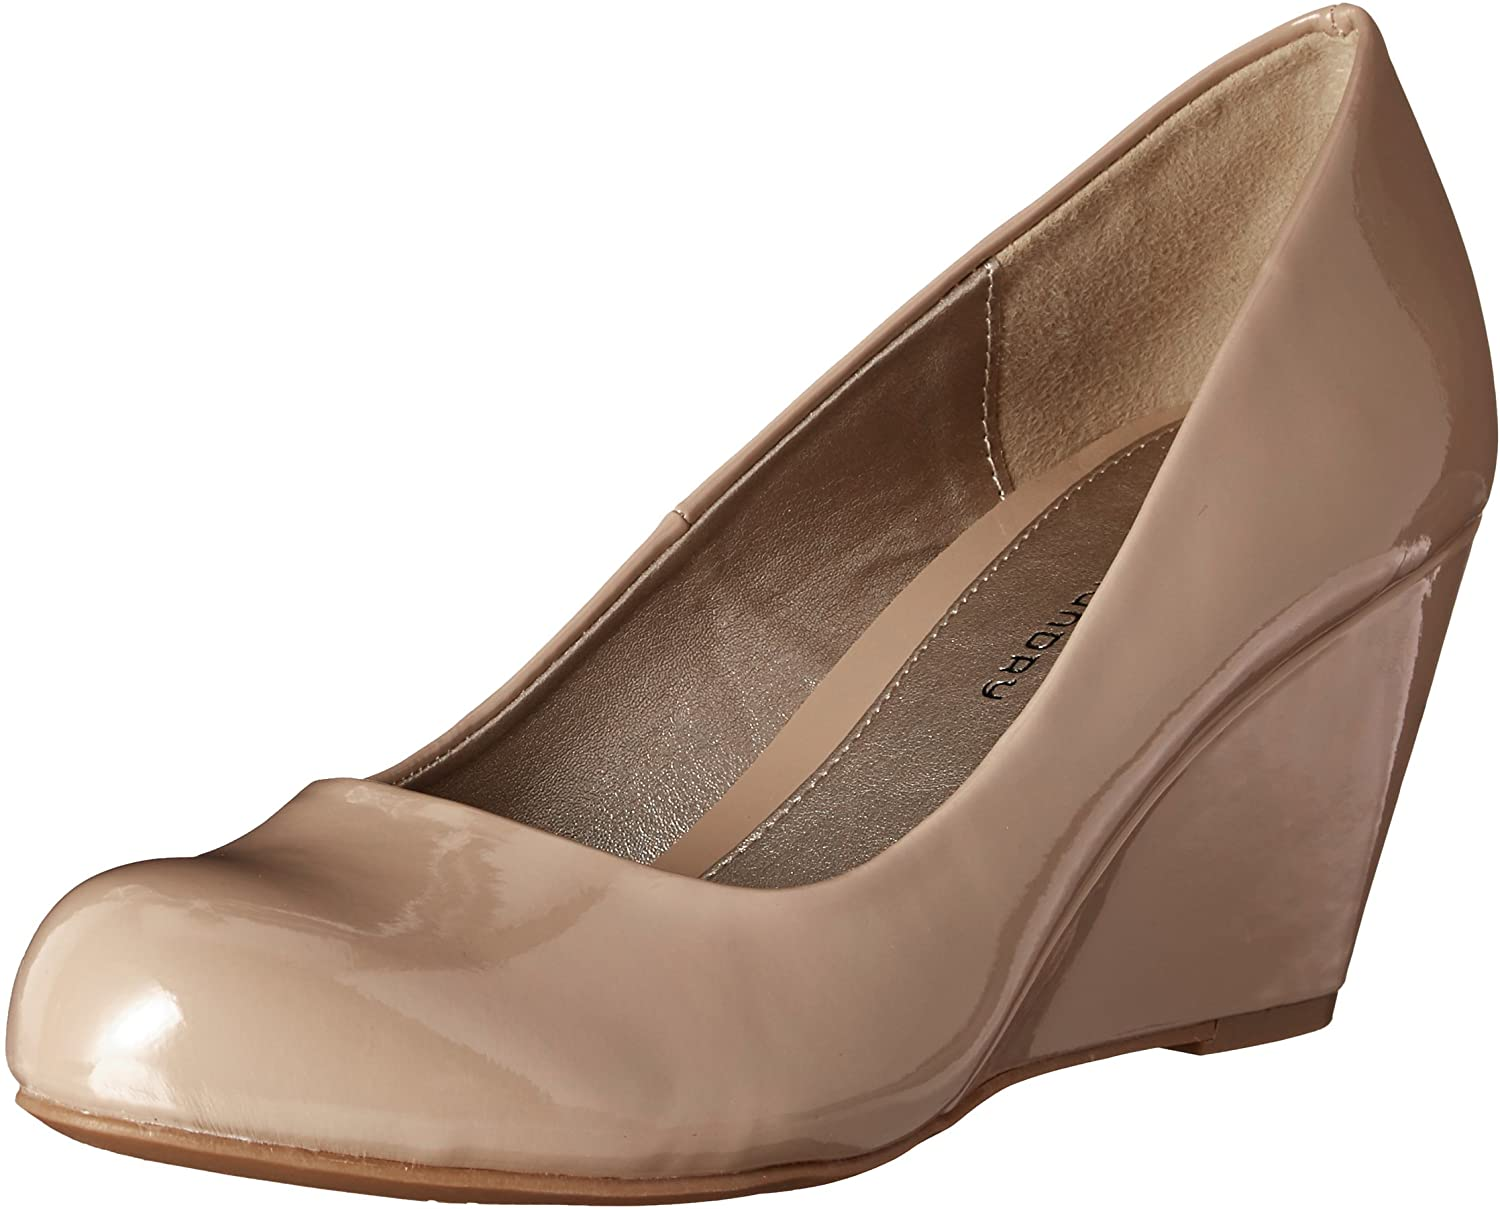 Cl by Chinese Laundry Women's Nima Wedge Pump